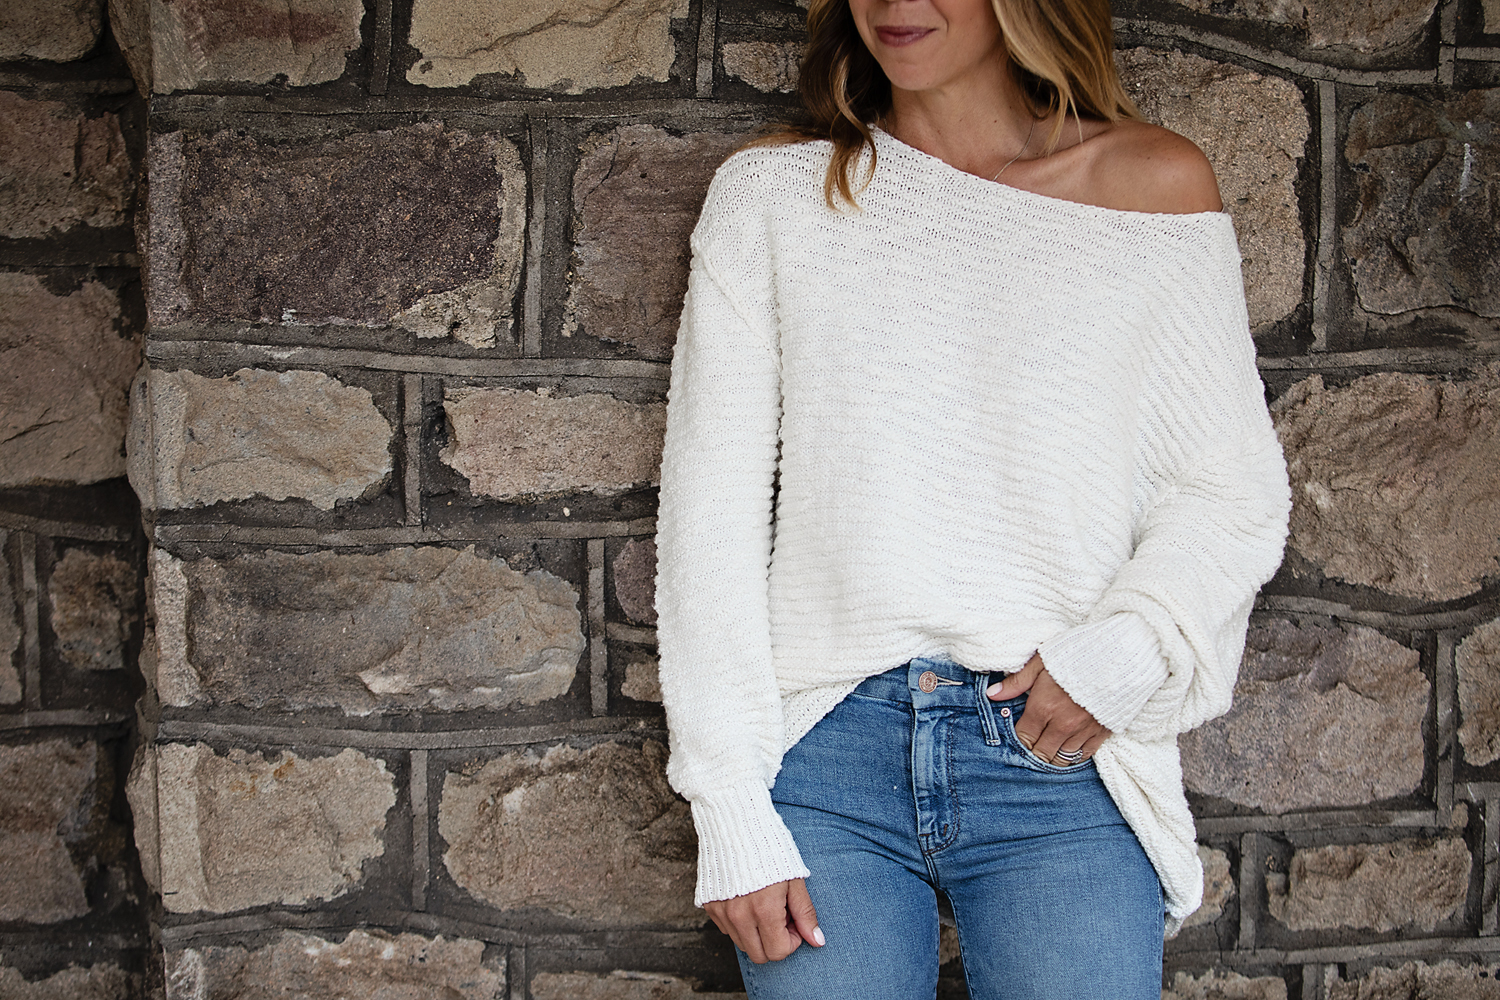 The Motherchic wearing free people sweaters from nordstrom